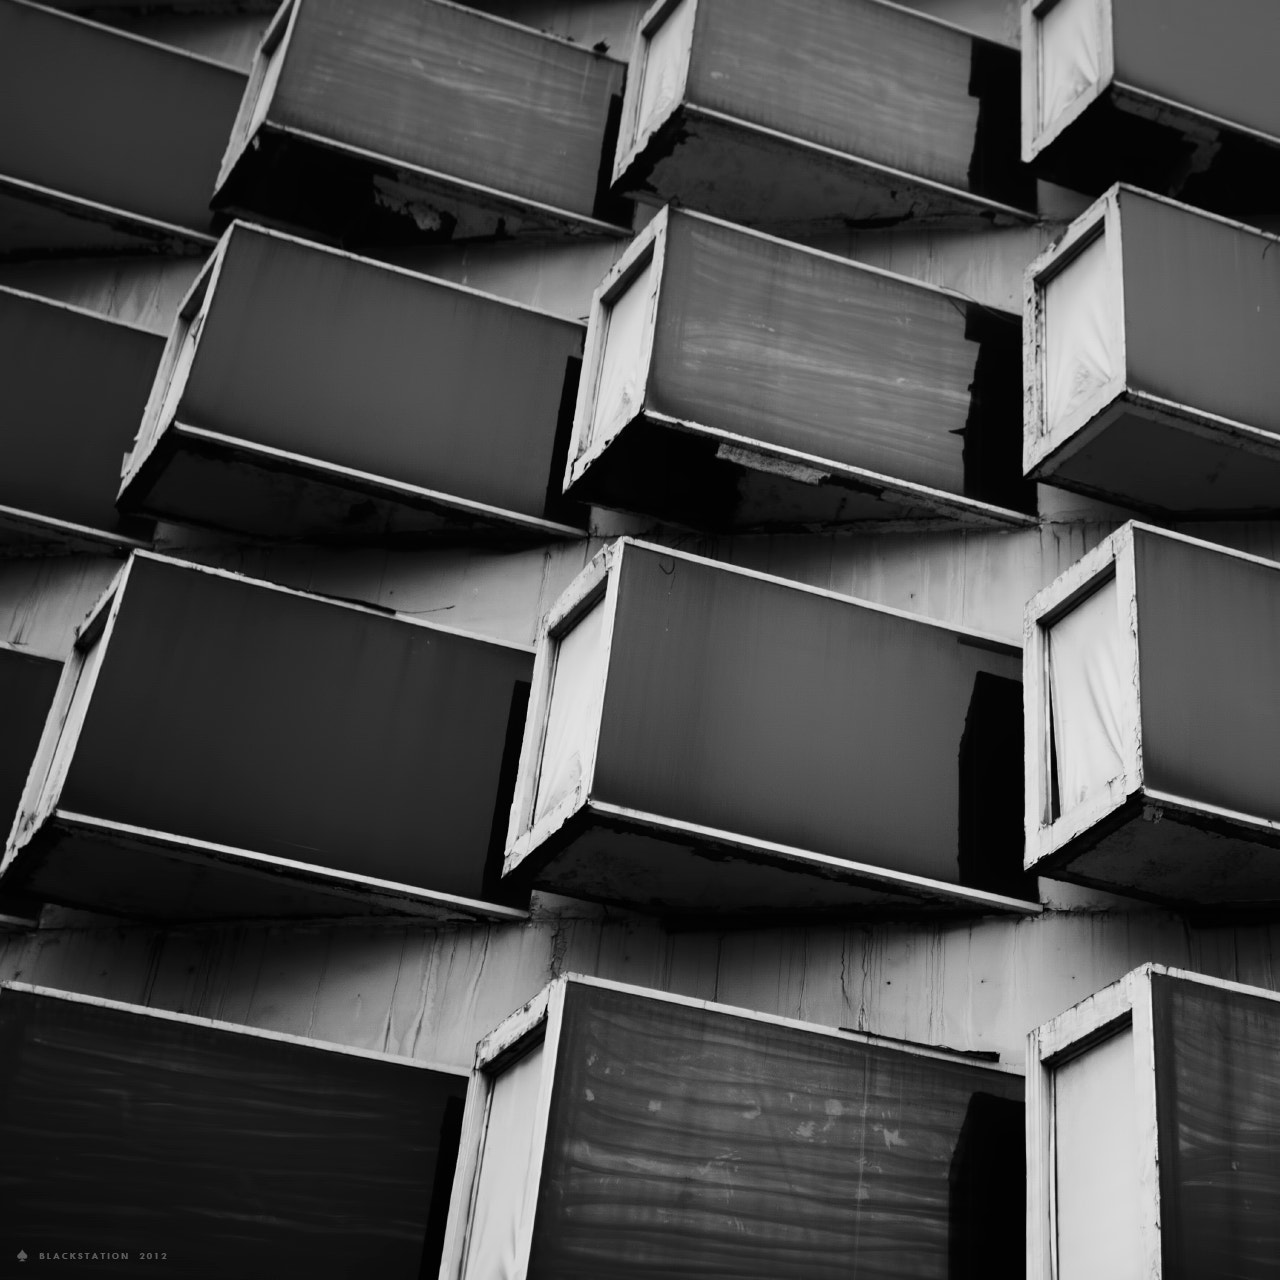 Photograph windows by Black Station on 500px